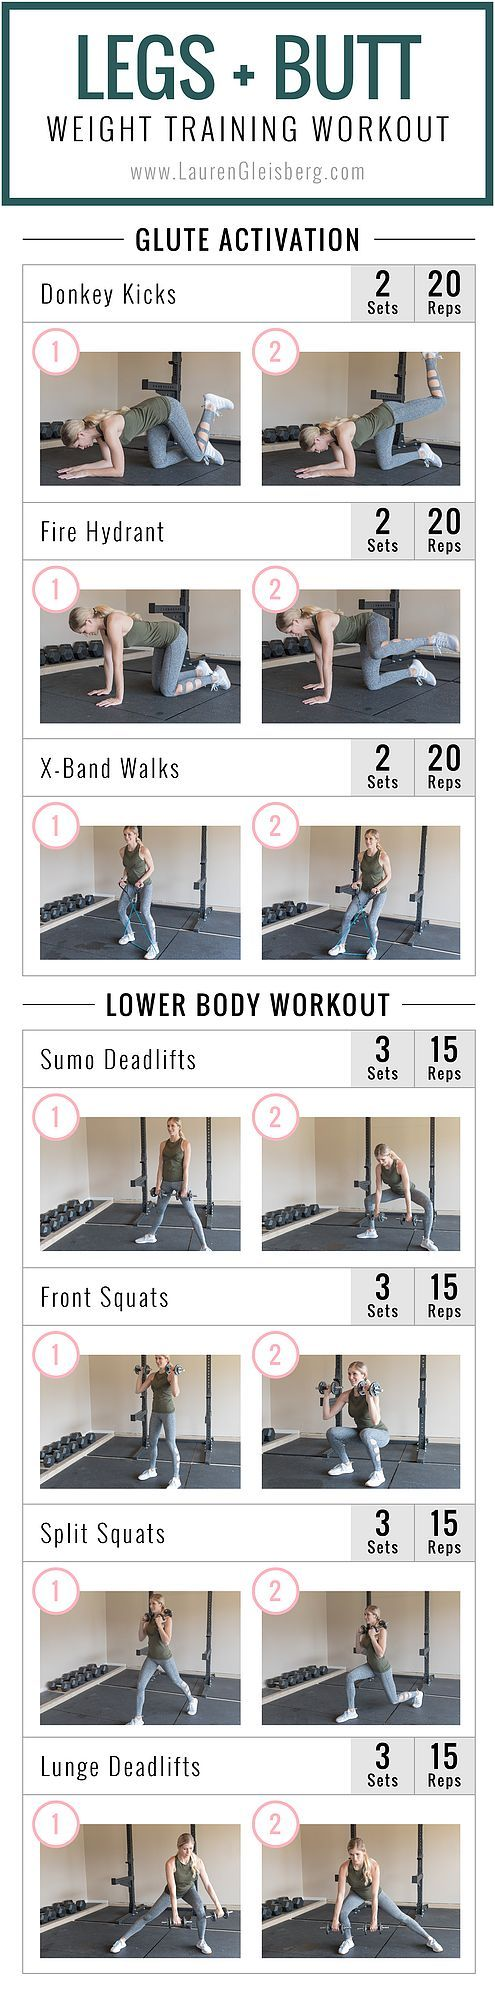 A traditional leg day workout featuring my signature glute activation followed by a lower body weight training workout. If you want to activate the glute muscles, it's very important to warm them up.